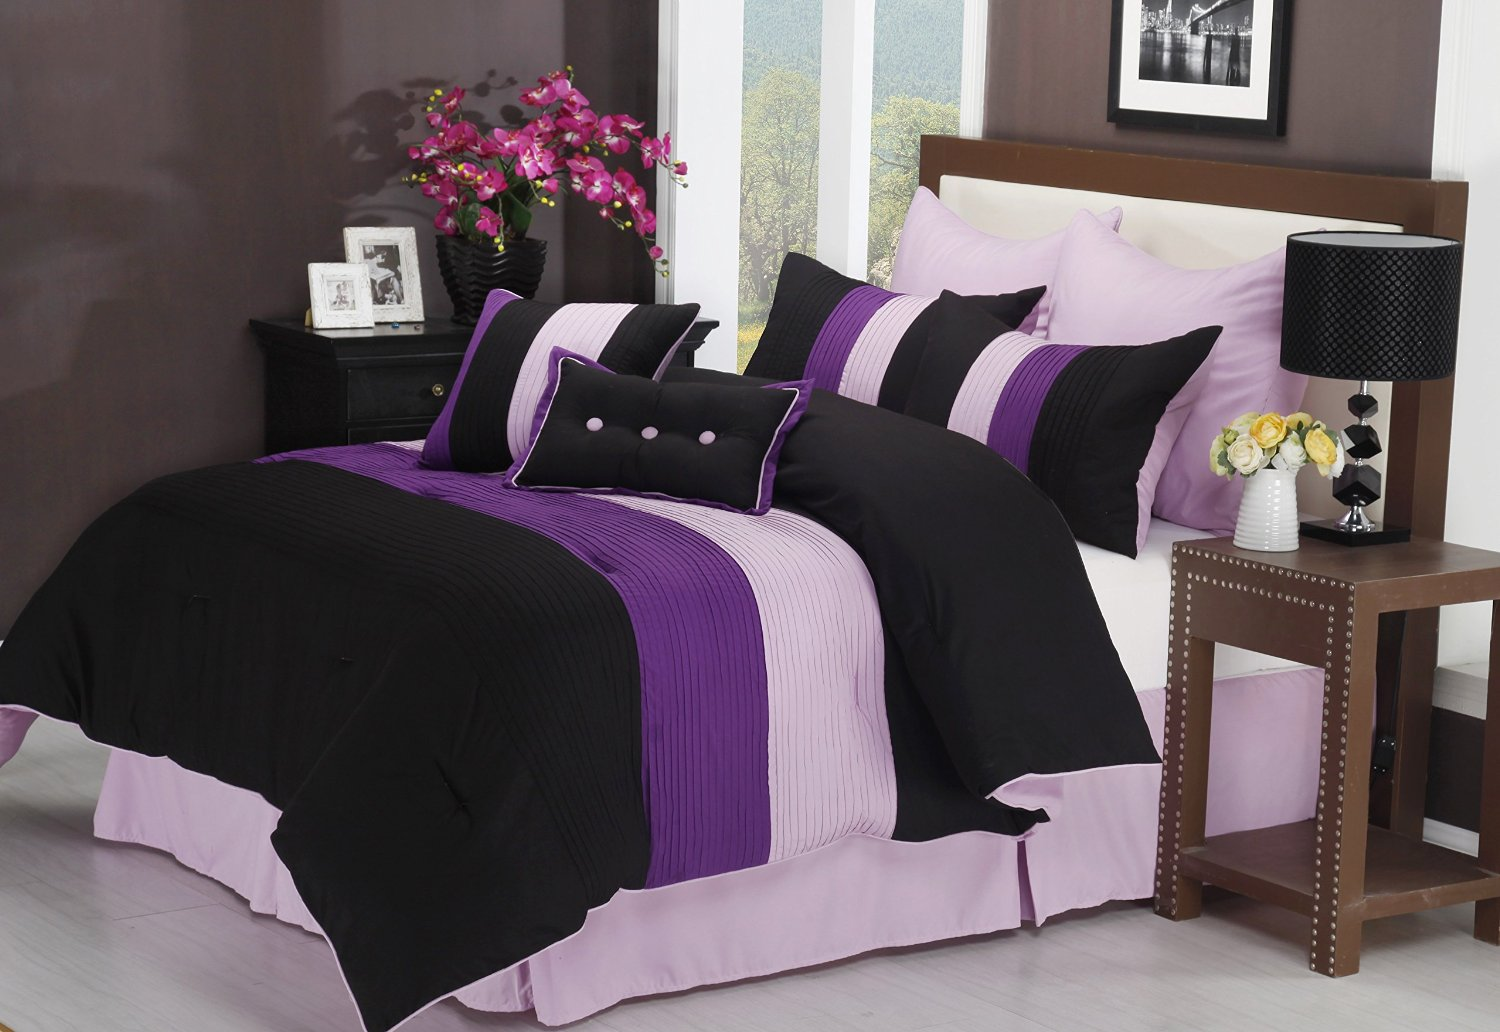 purple black and white bedding sets drama uplifted 19523 | 81g3voofr3l sl1500